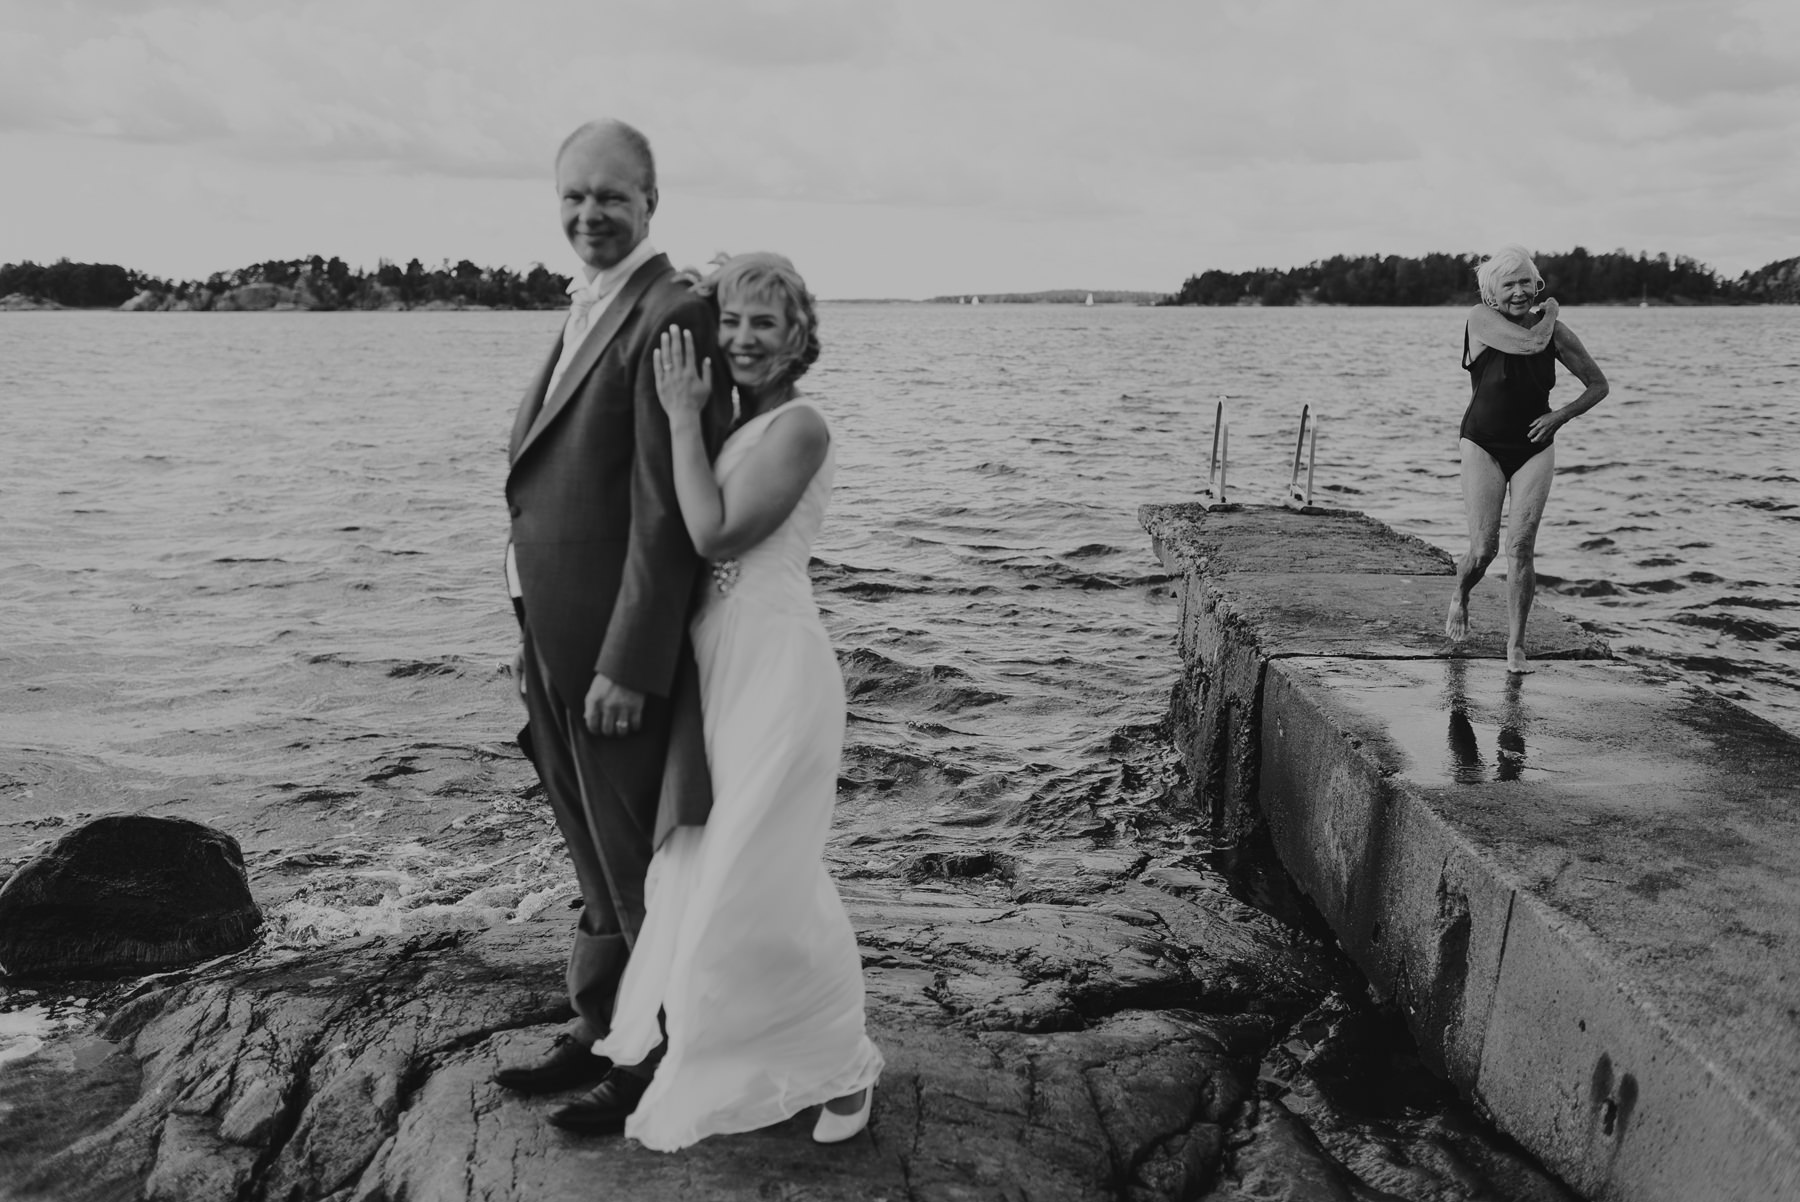 2015 Wedding Photographer Hääkuvaaja 0143